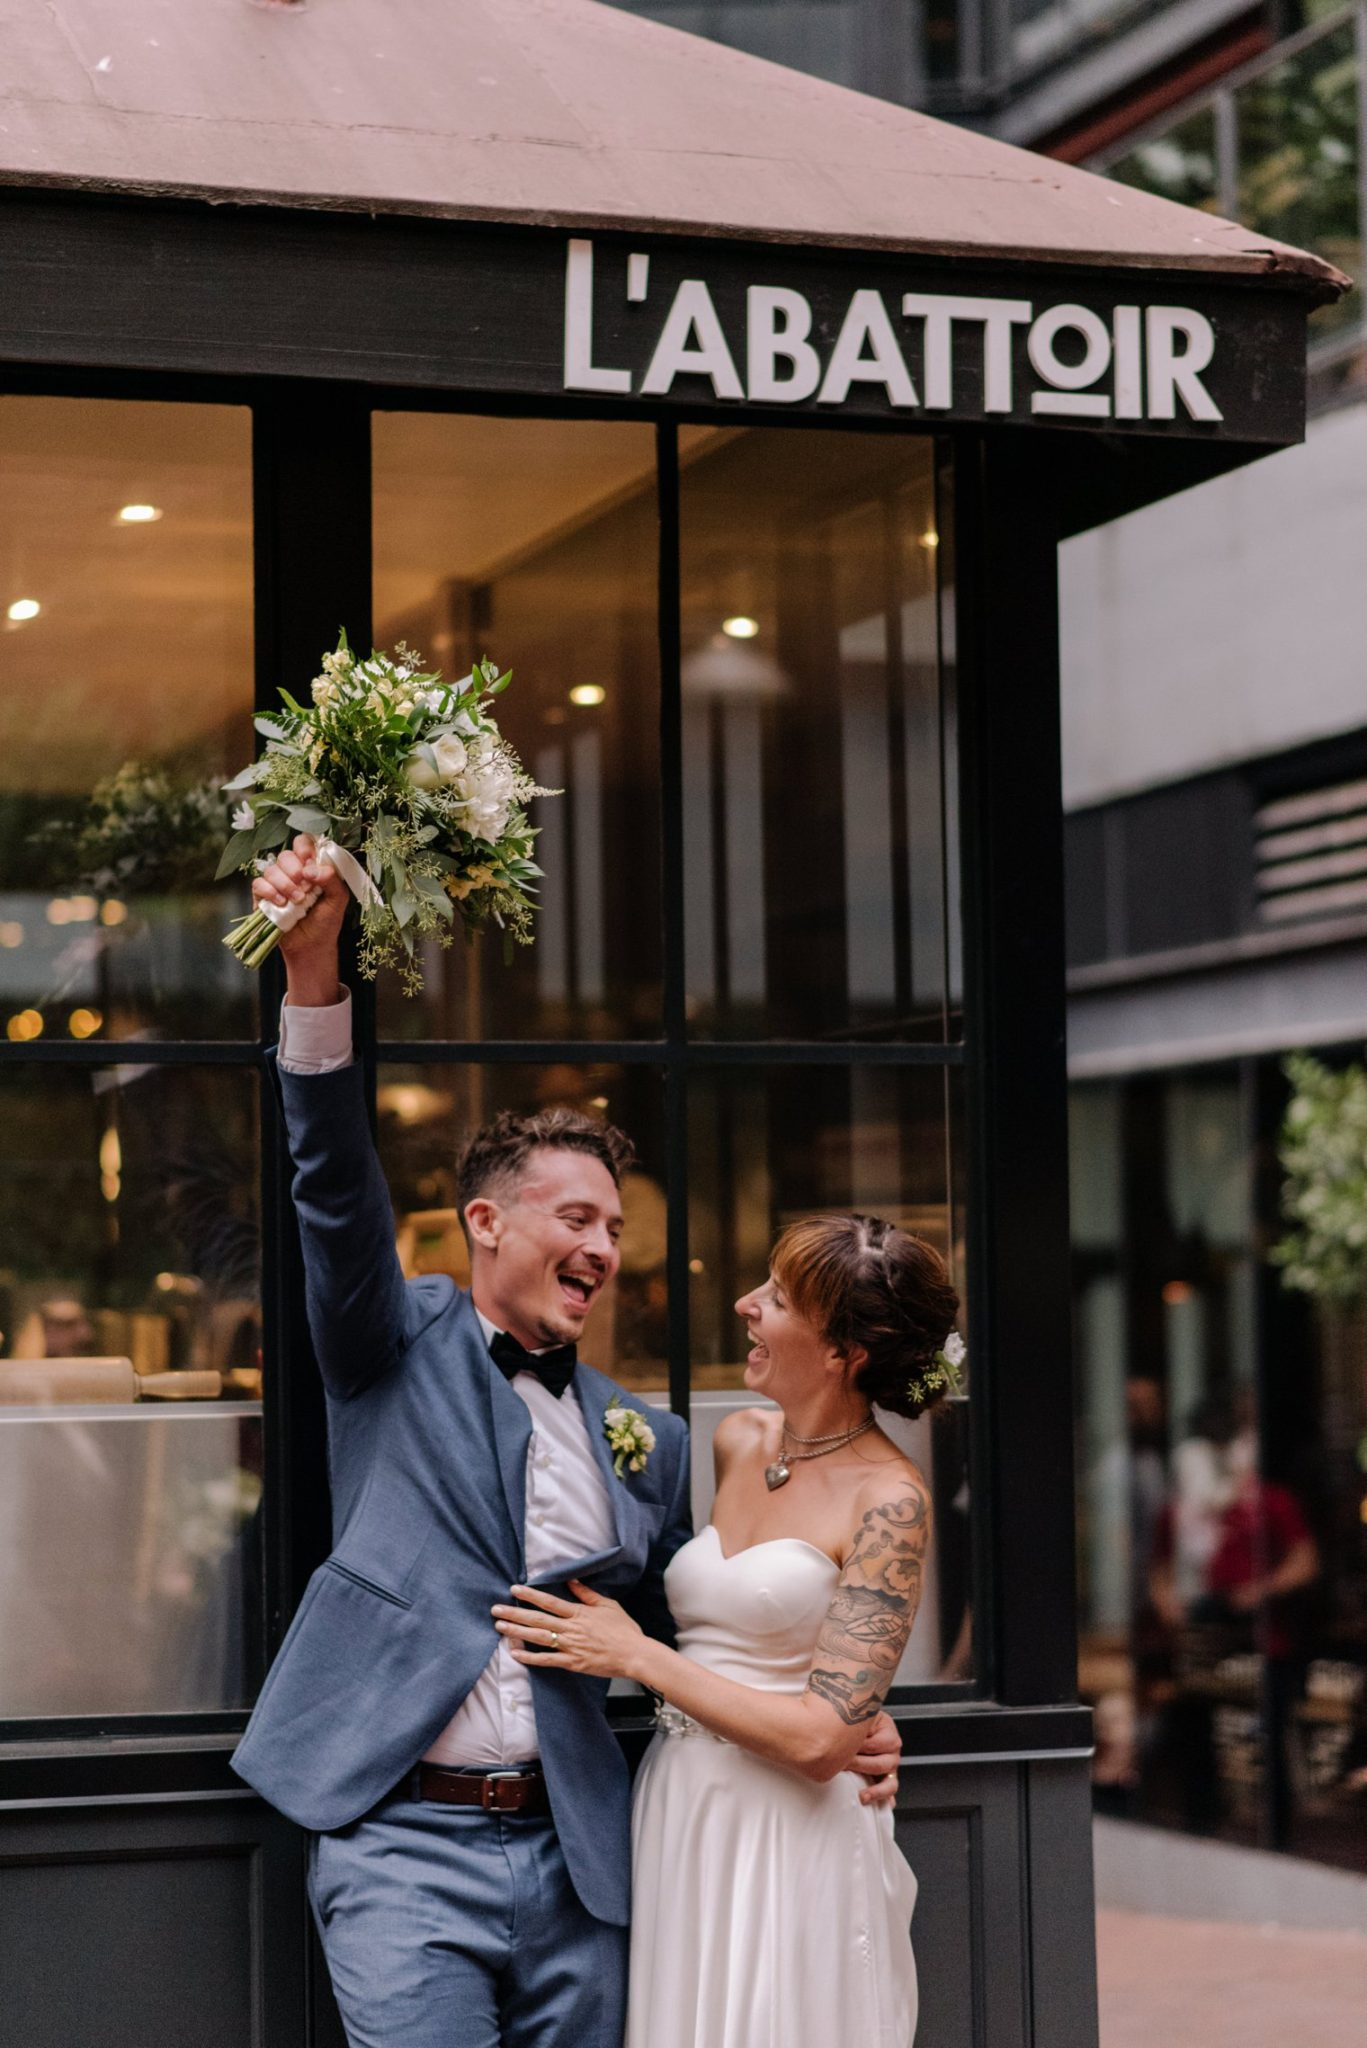 l'abattoir gastown wedding